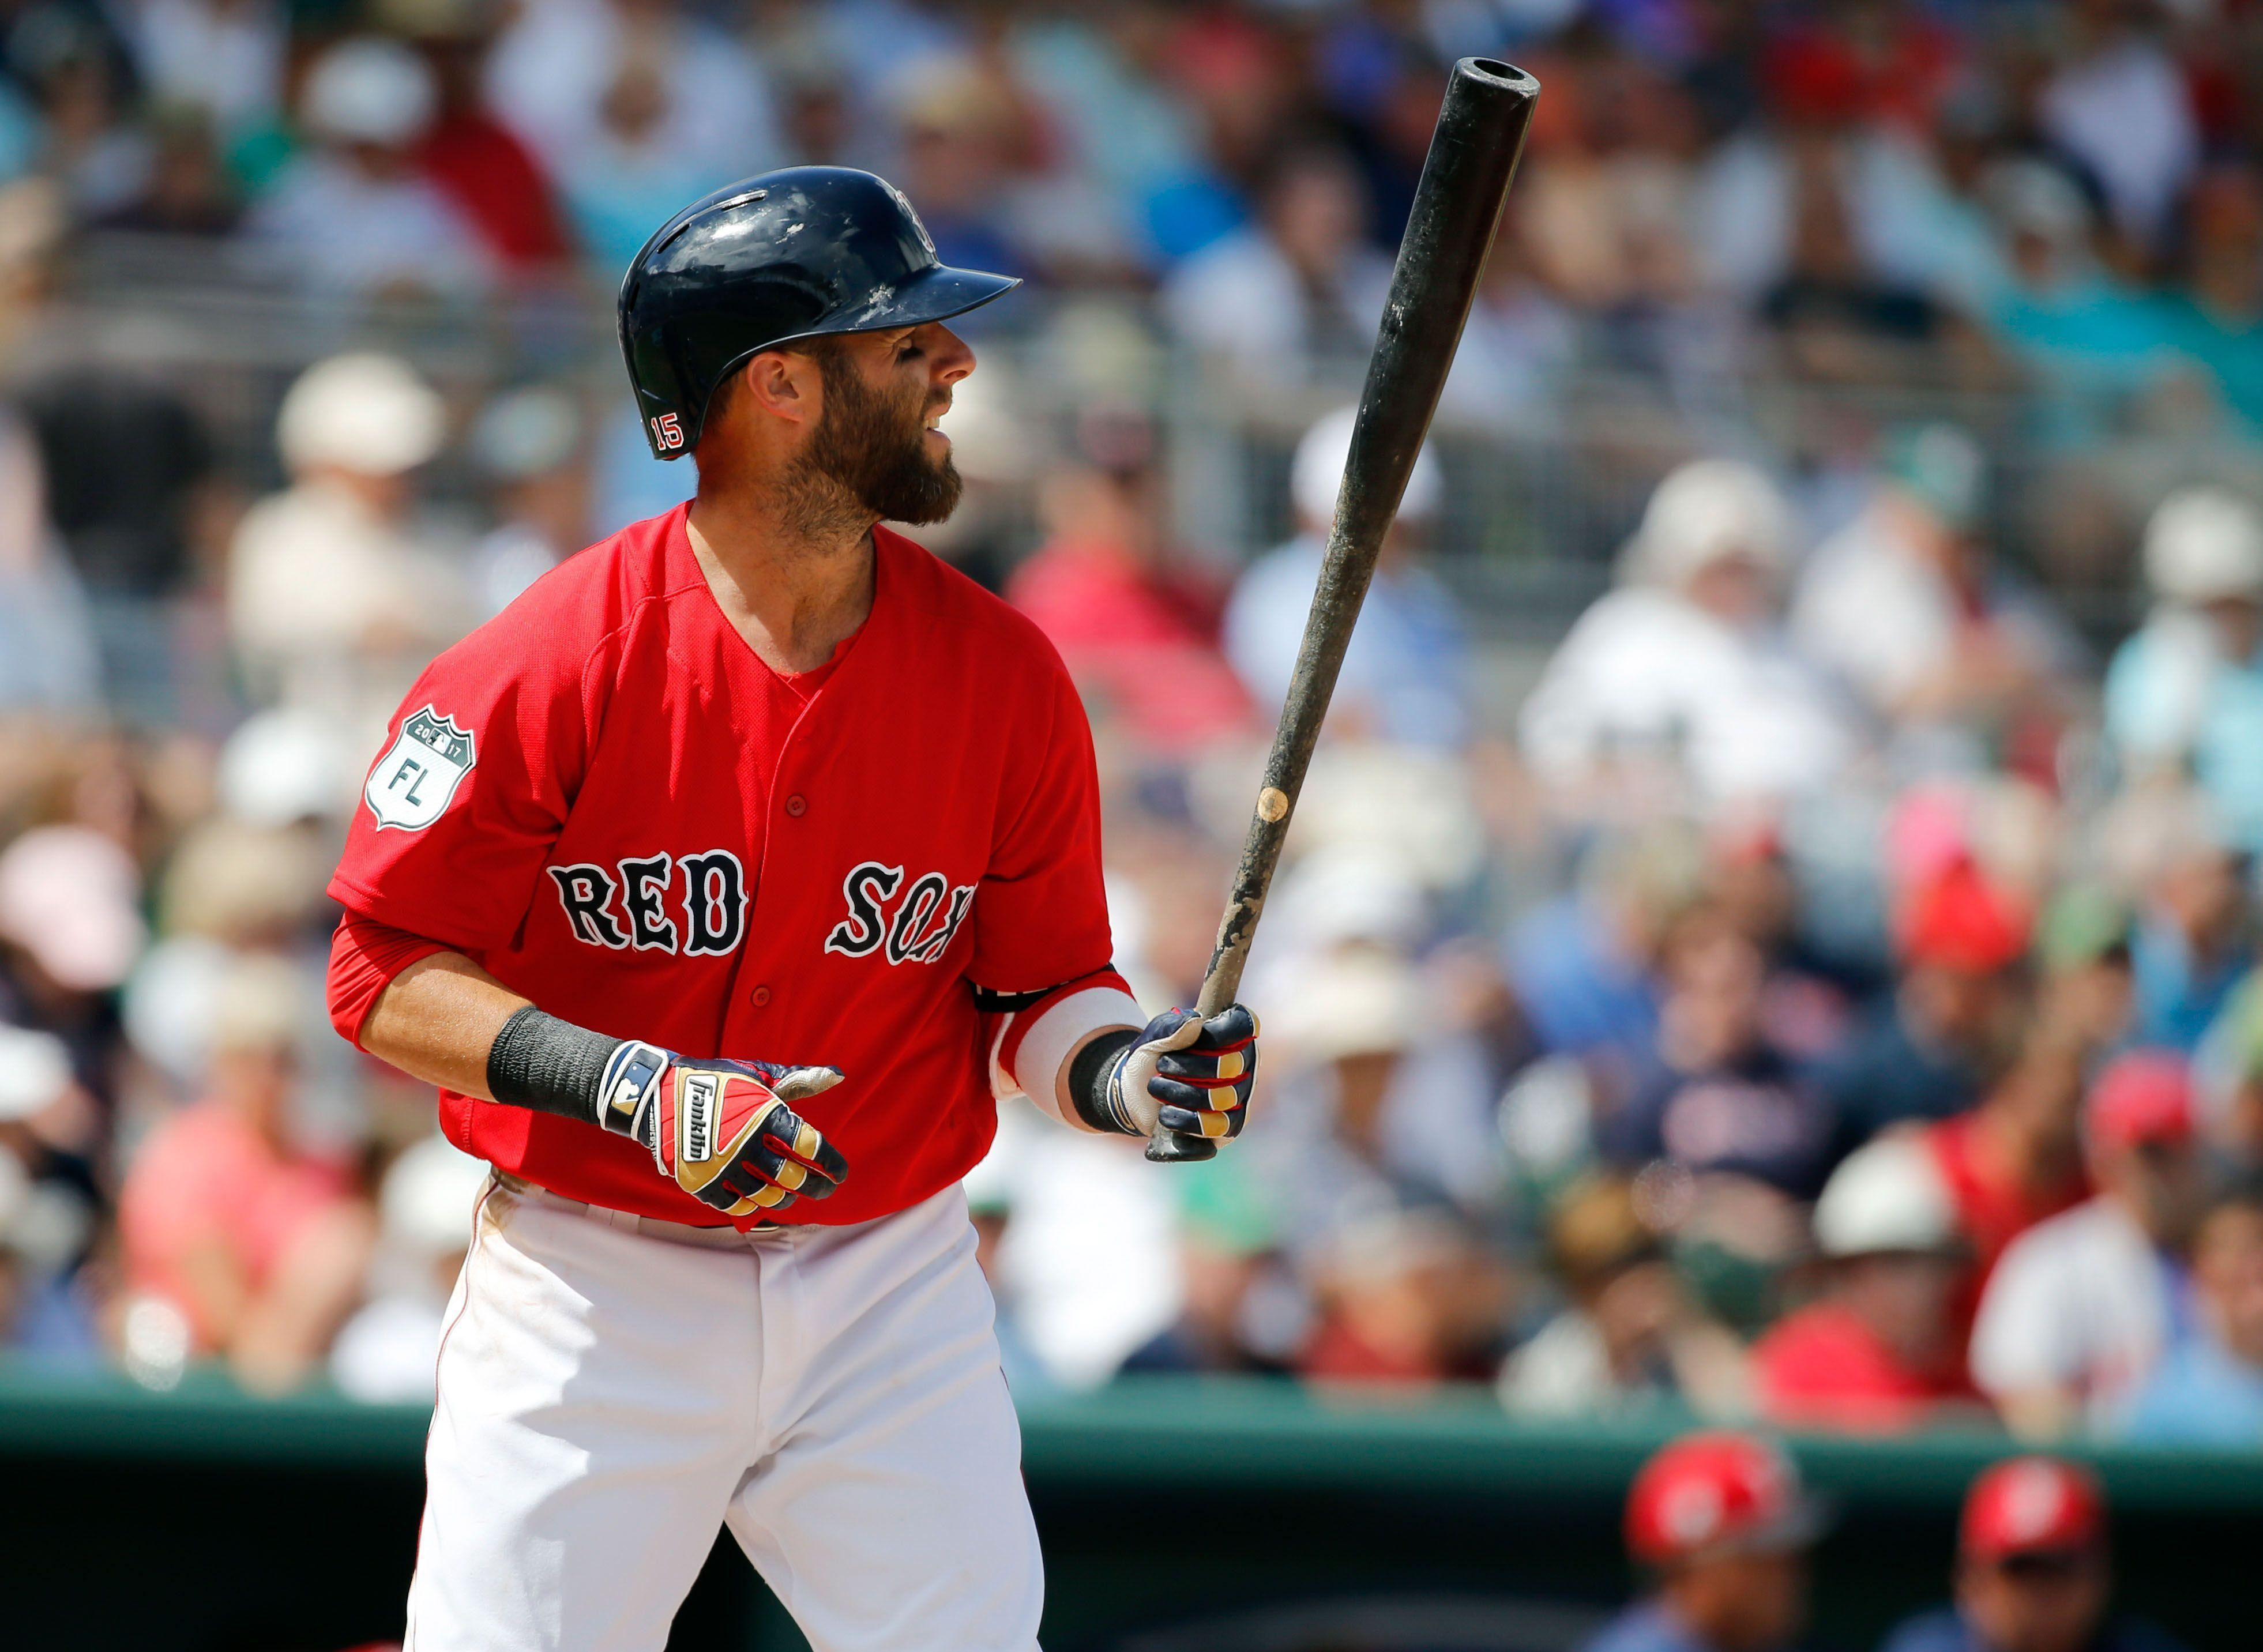 Boston Red Sox wallpapers, Sports, HQ Boston Red Sox pictures | 4K ...